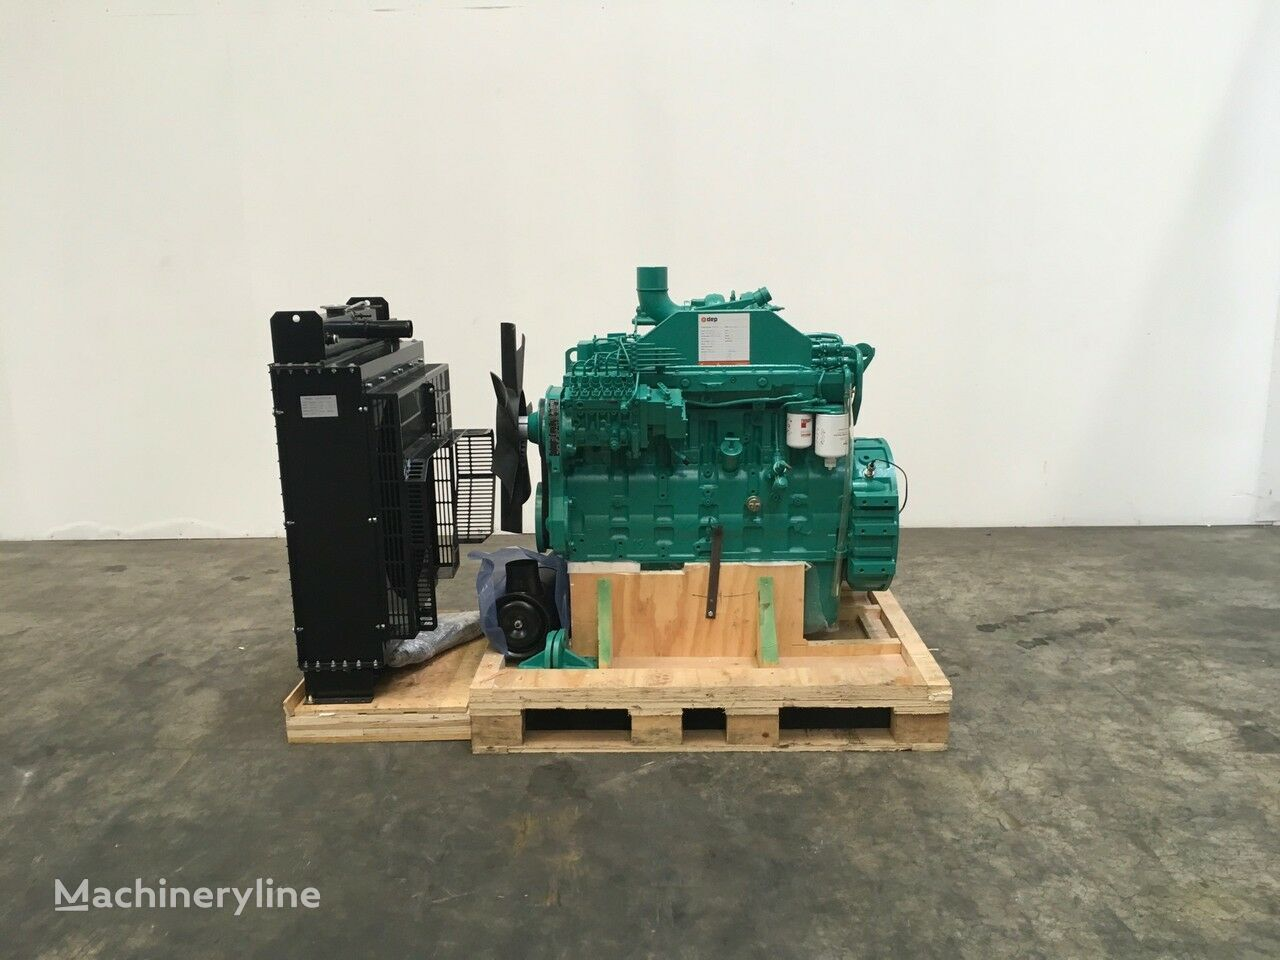 new CUMMINS 6cta 8.3 G2 engine for other generator